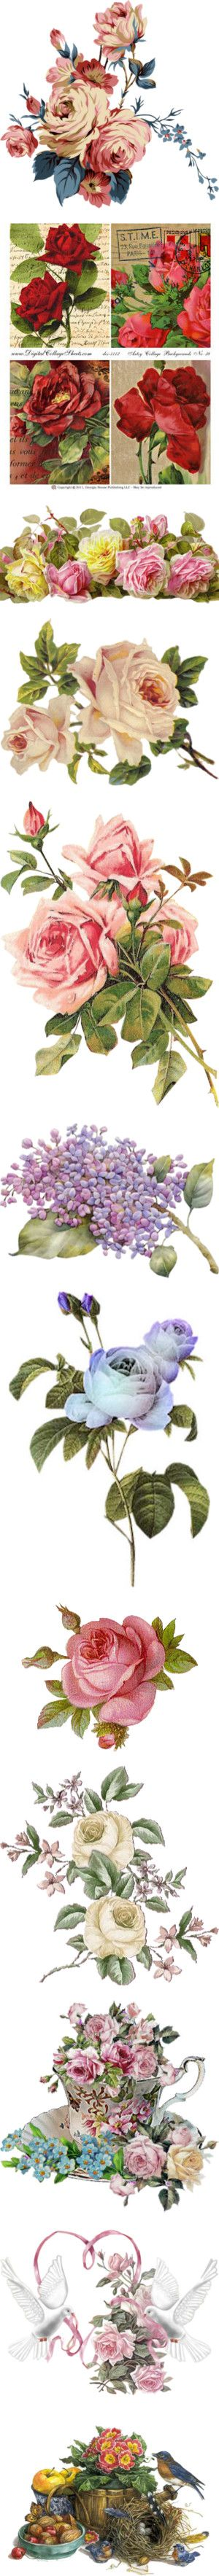 """""""Victorian Flowers"""" by maneevanit ❤ liked on Polyvore"""